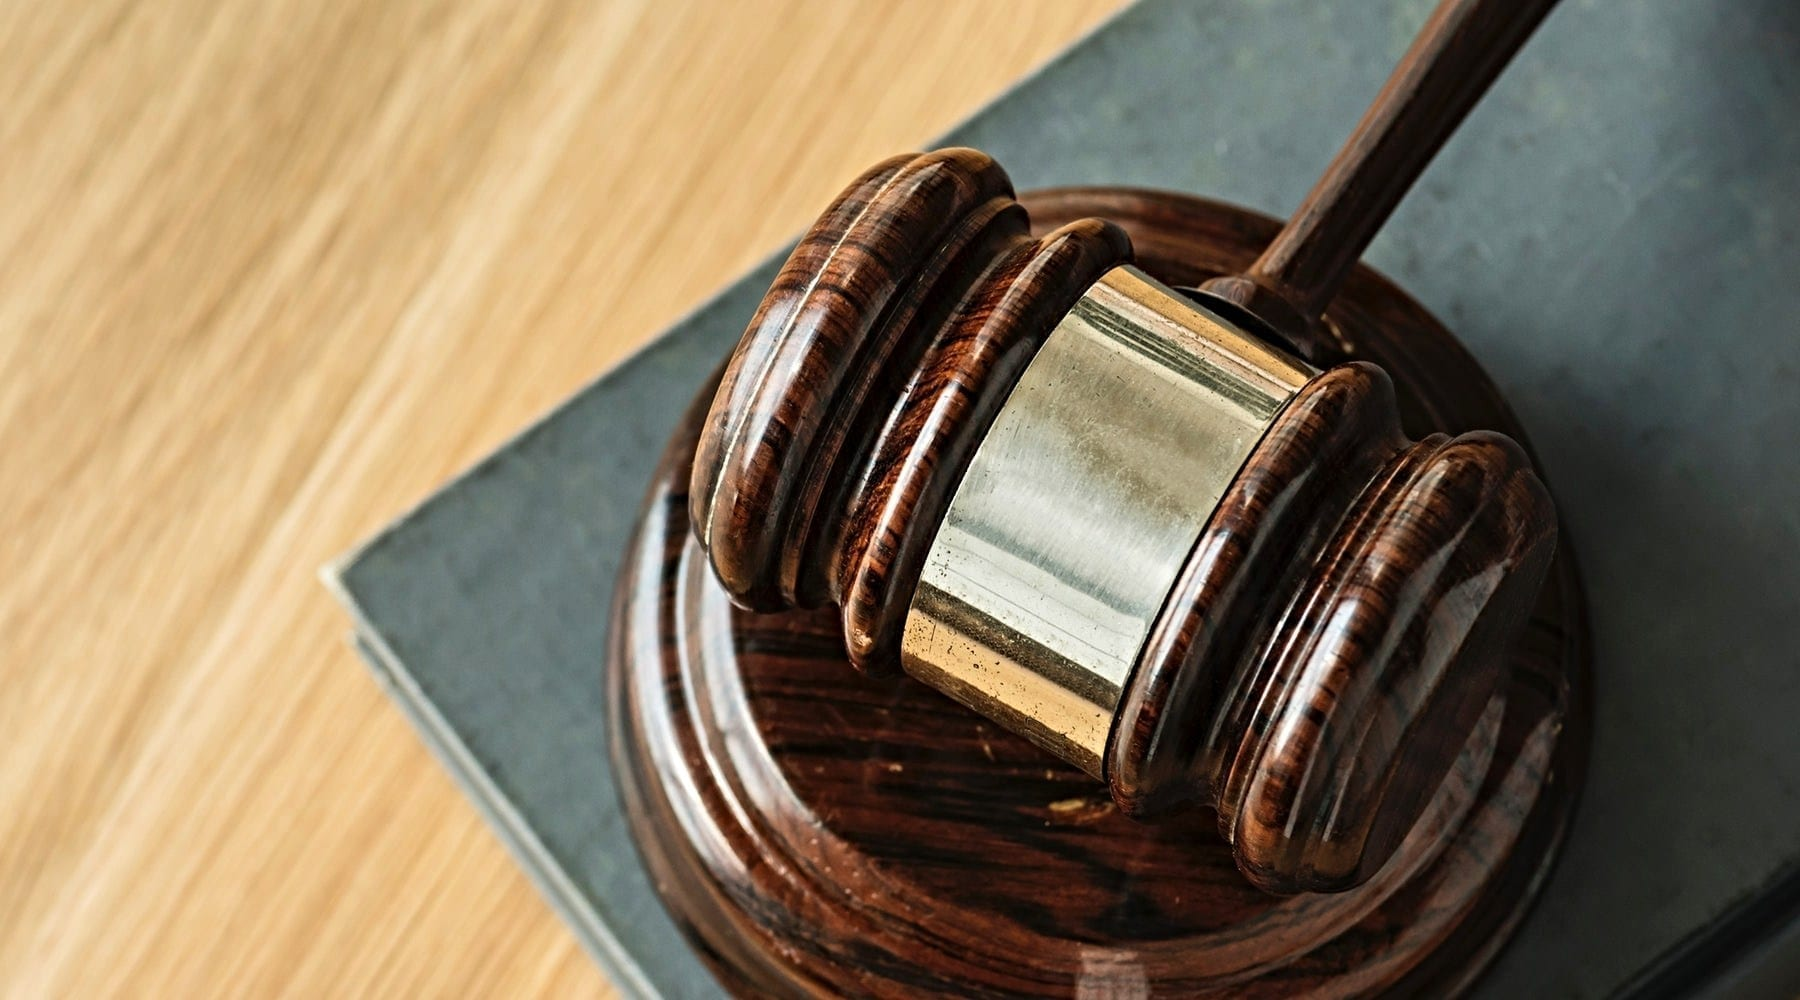 Gavel resting on a stand